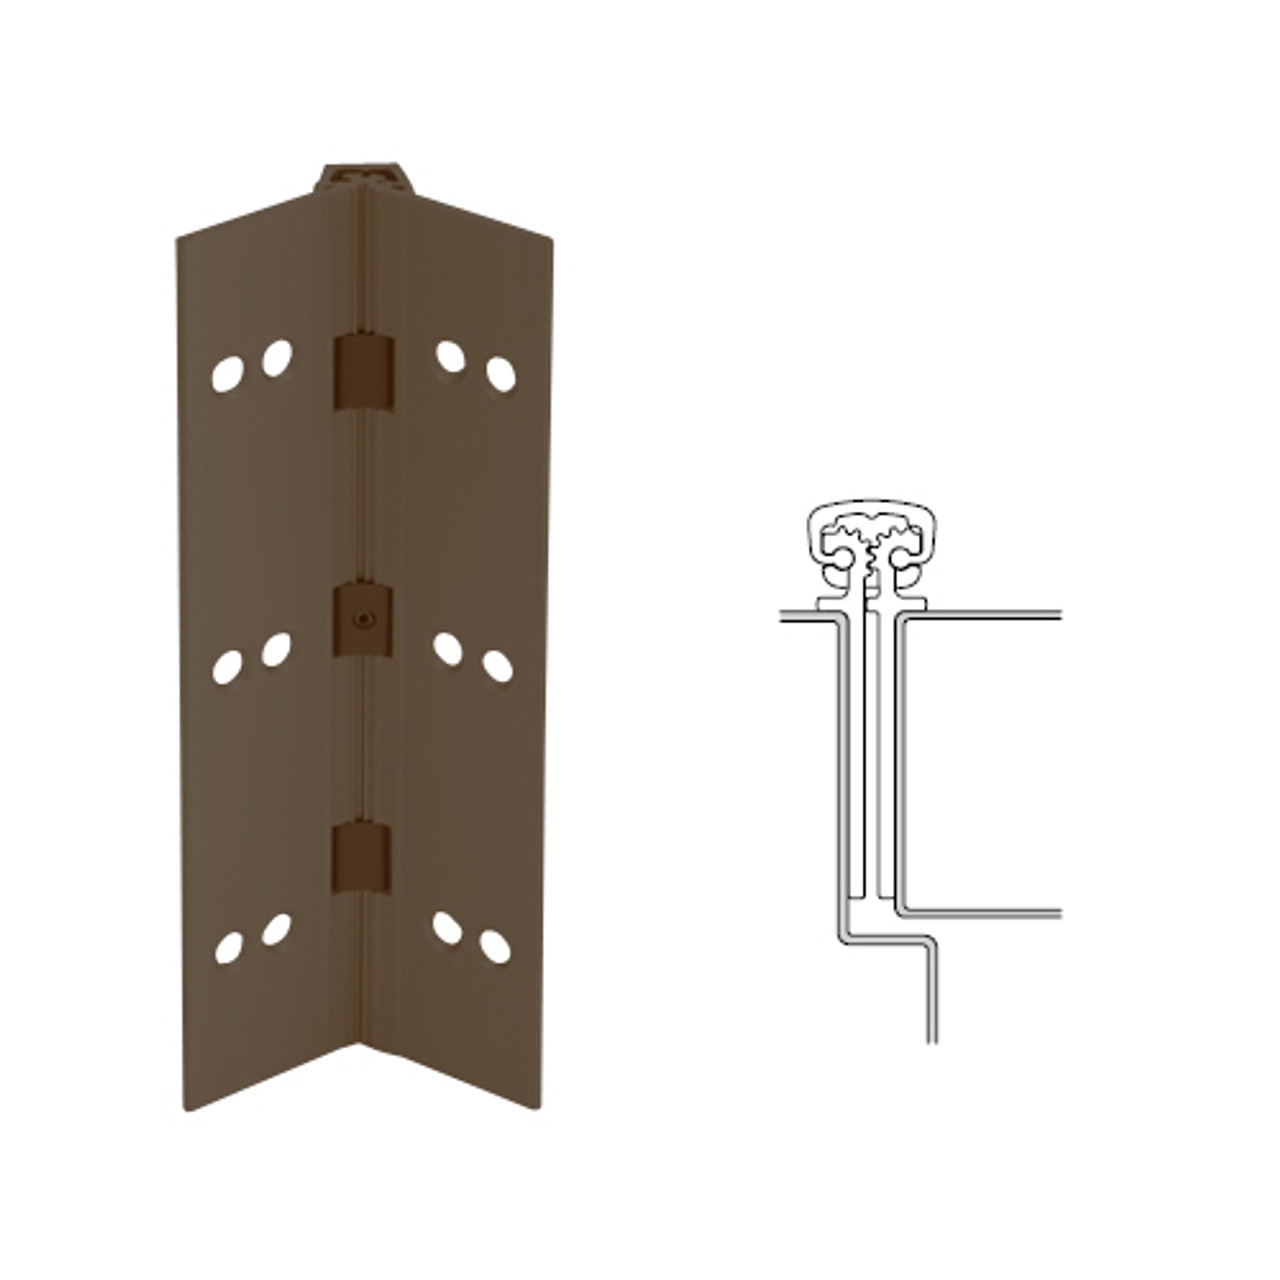 027XY-313AN-83-SECWDWD IVES Full Mortise Continuous Geared Hinges with Security Screws - Hex Pin Drive in Dark Bronze Anodized